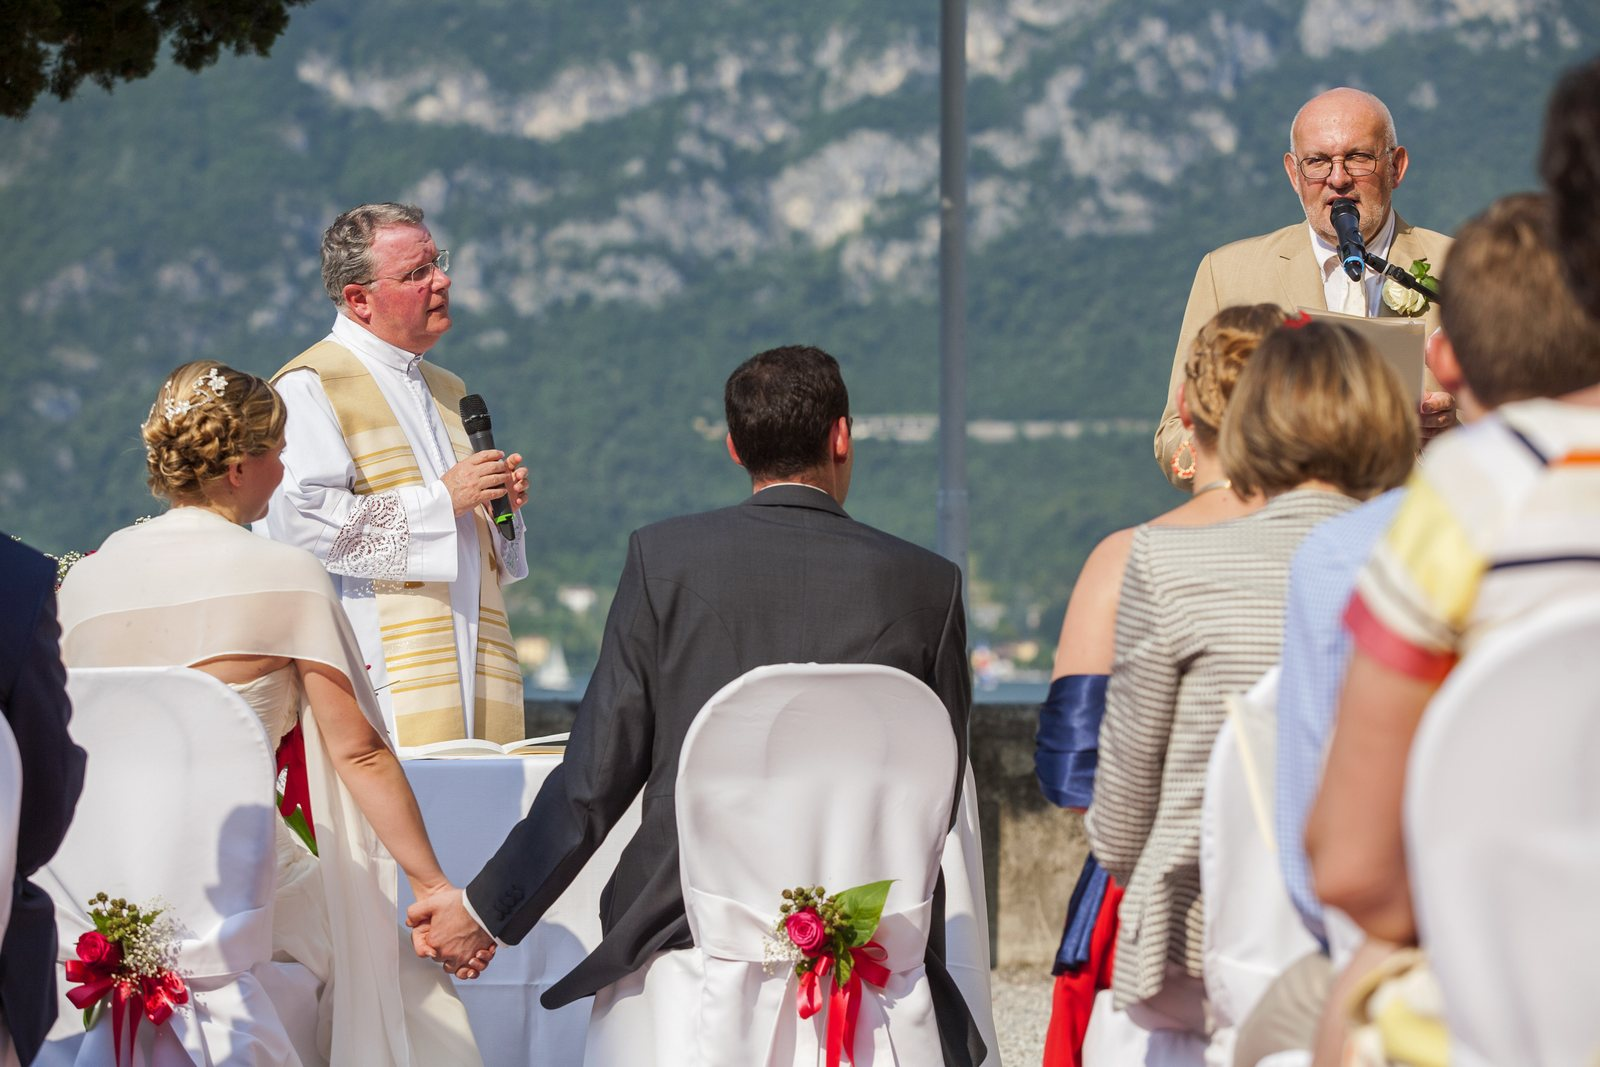 religious wedding ceremony in villa corte del lago